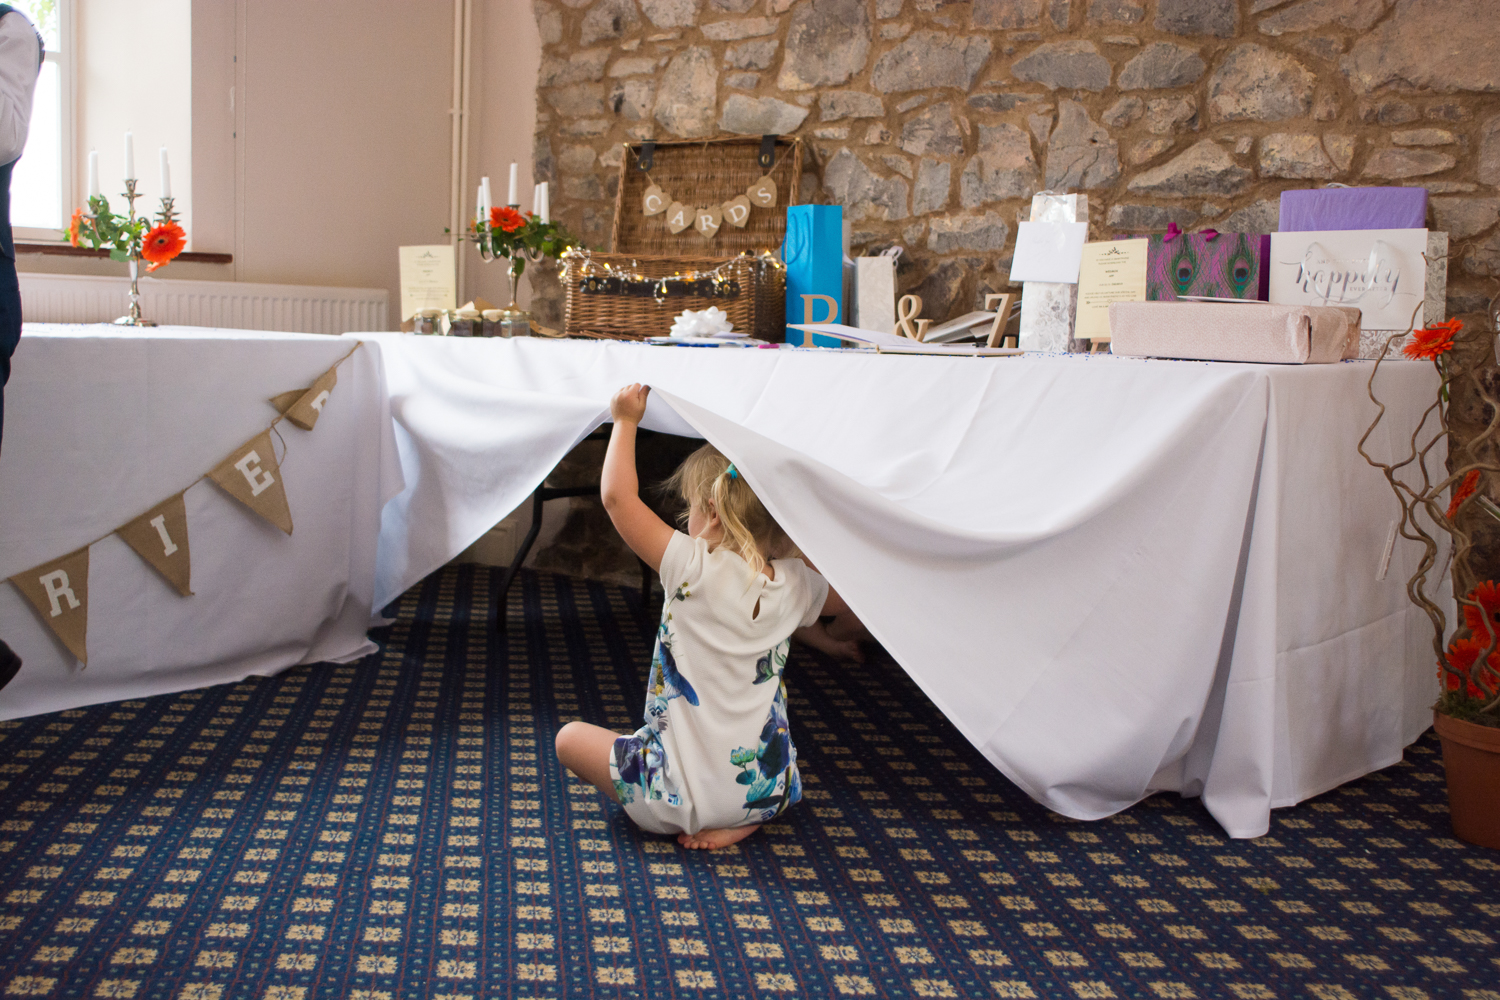 children play under the table at The Lord Haldon Hotel in Devon